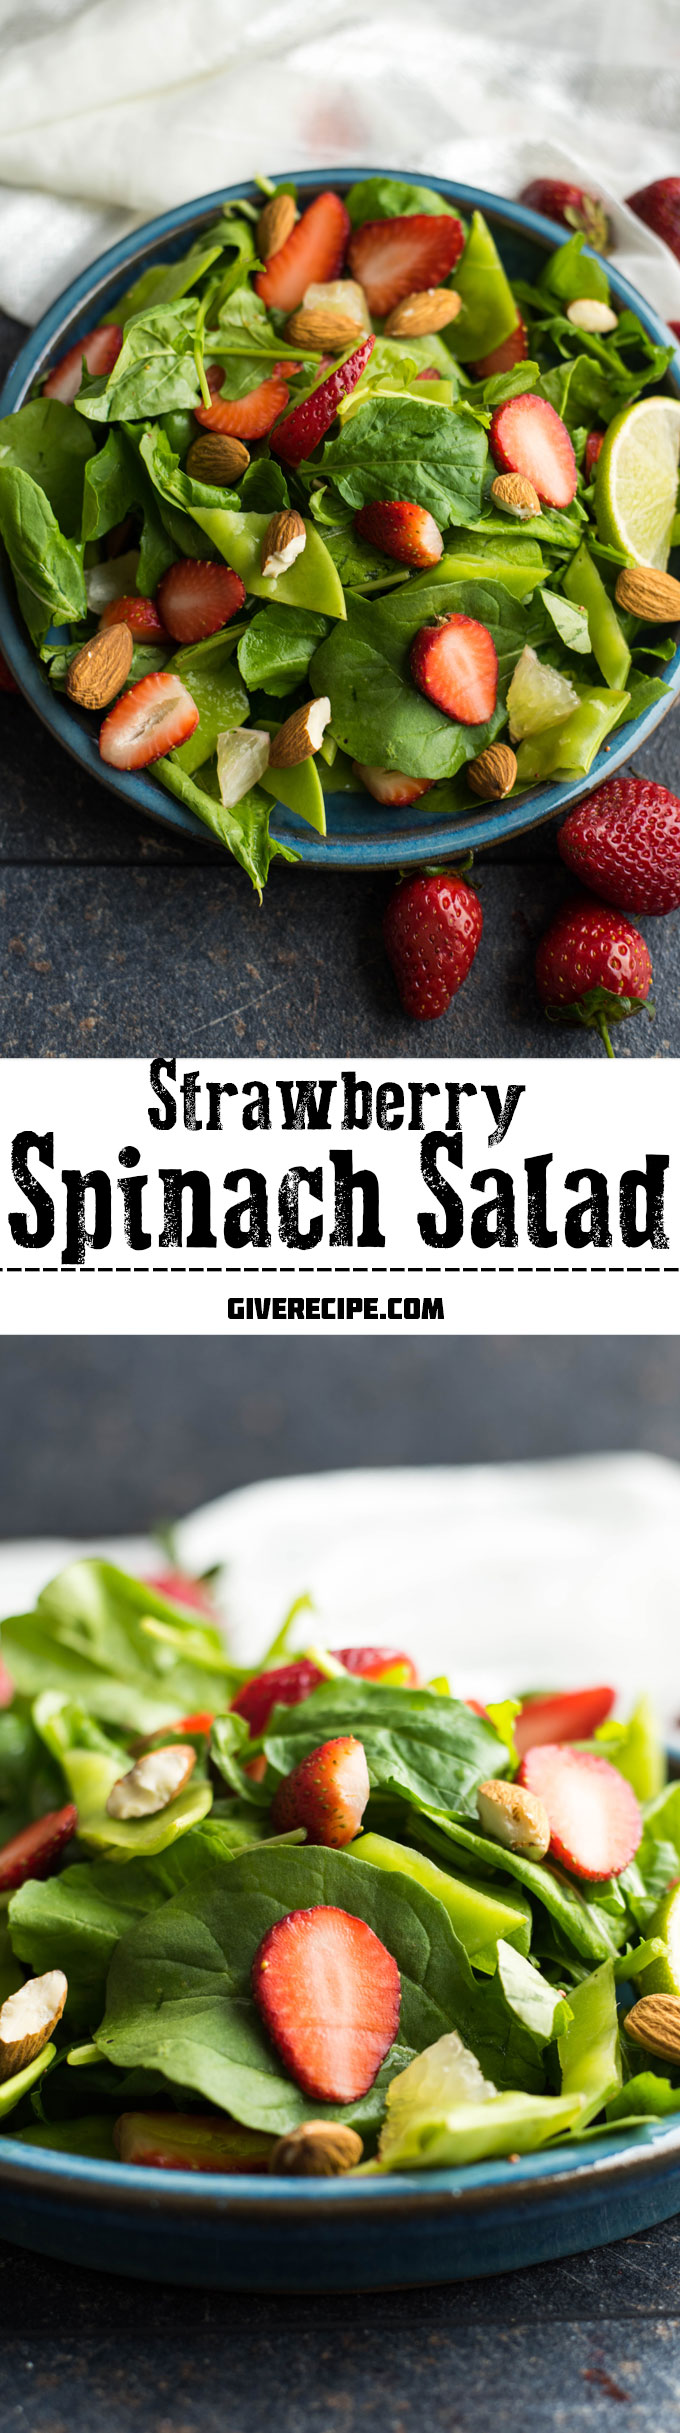 Strawberry Spinach Salad Give Recipe Recipe Spinach Strawberry Salad Healthy Salad Recipes Spinach Salad